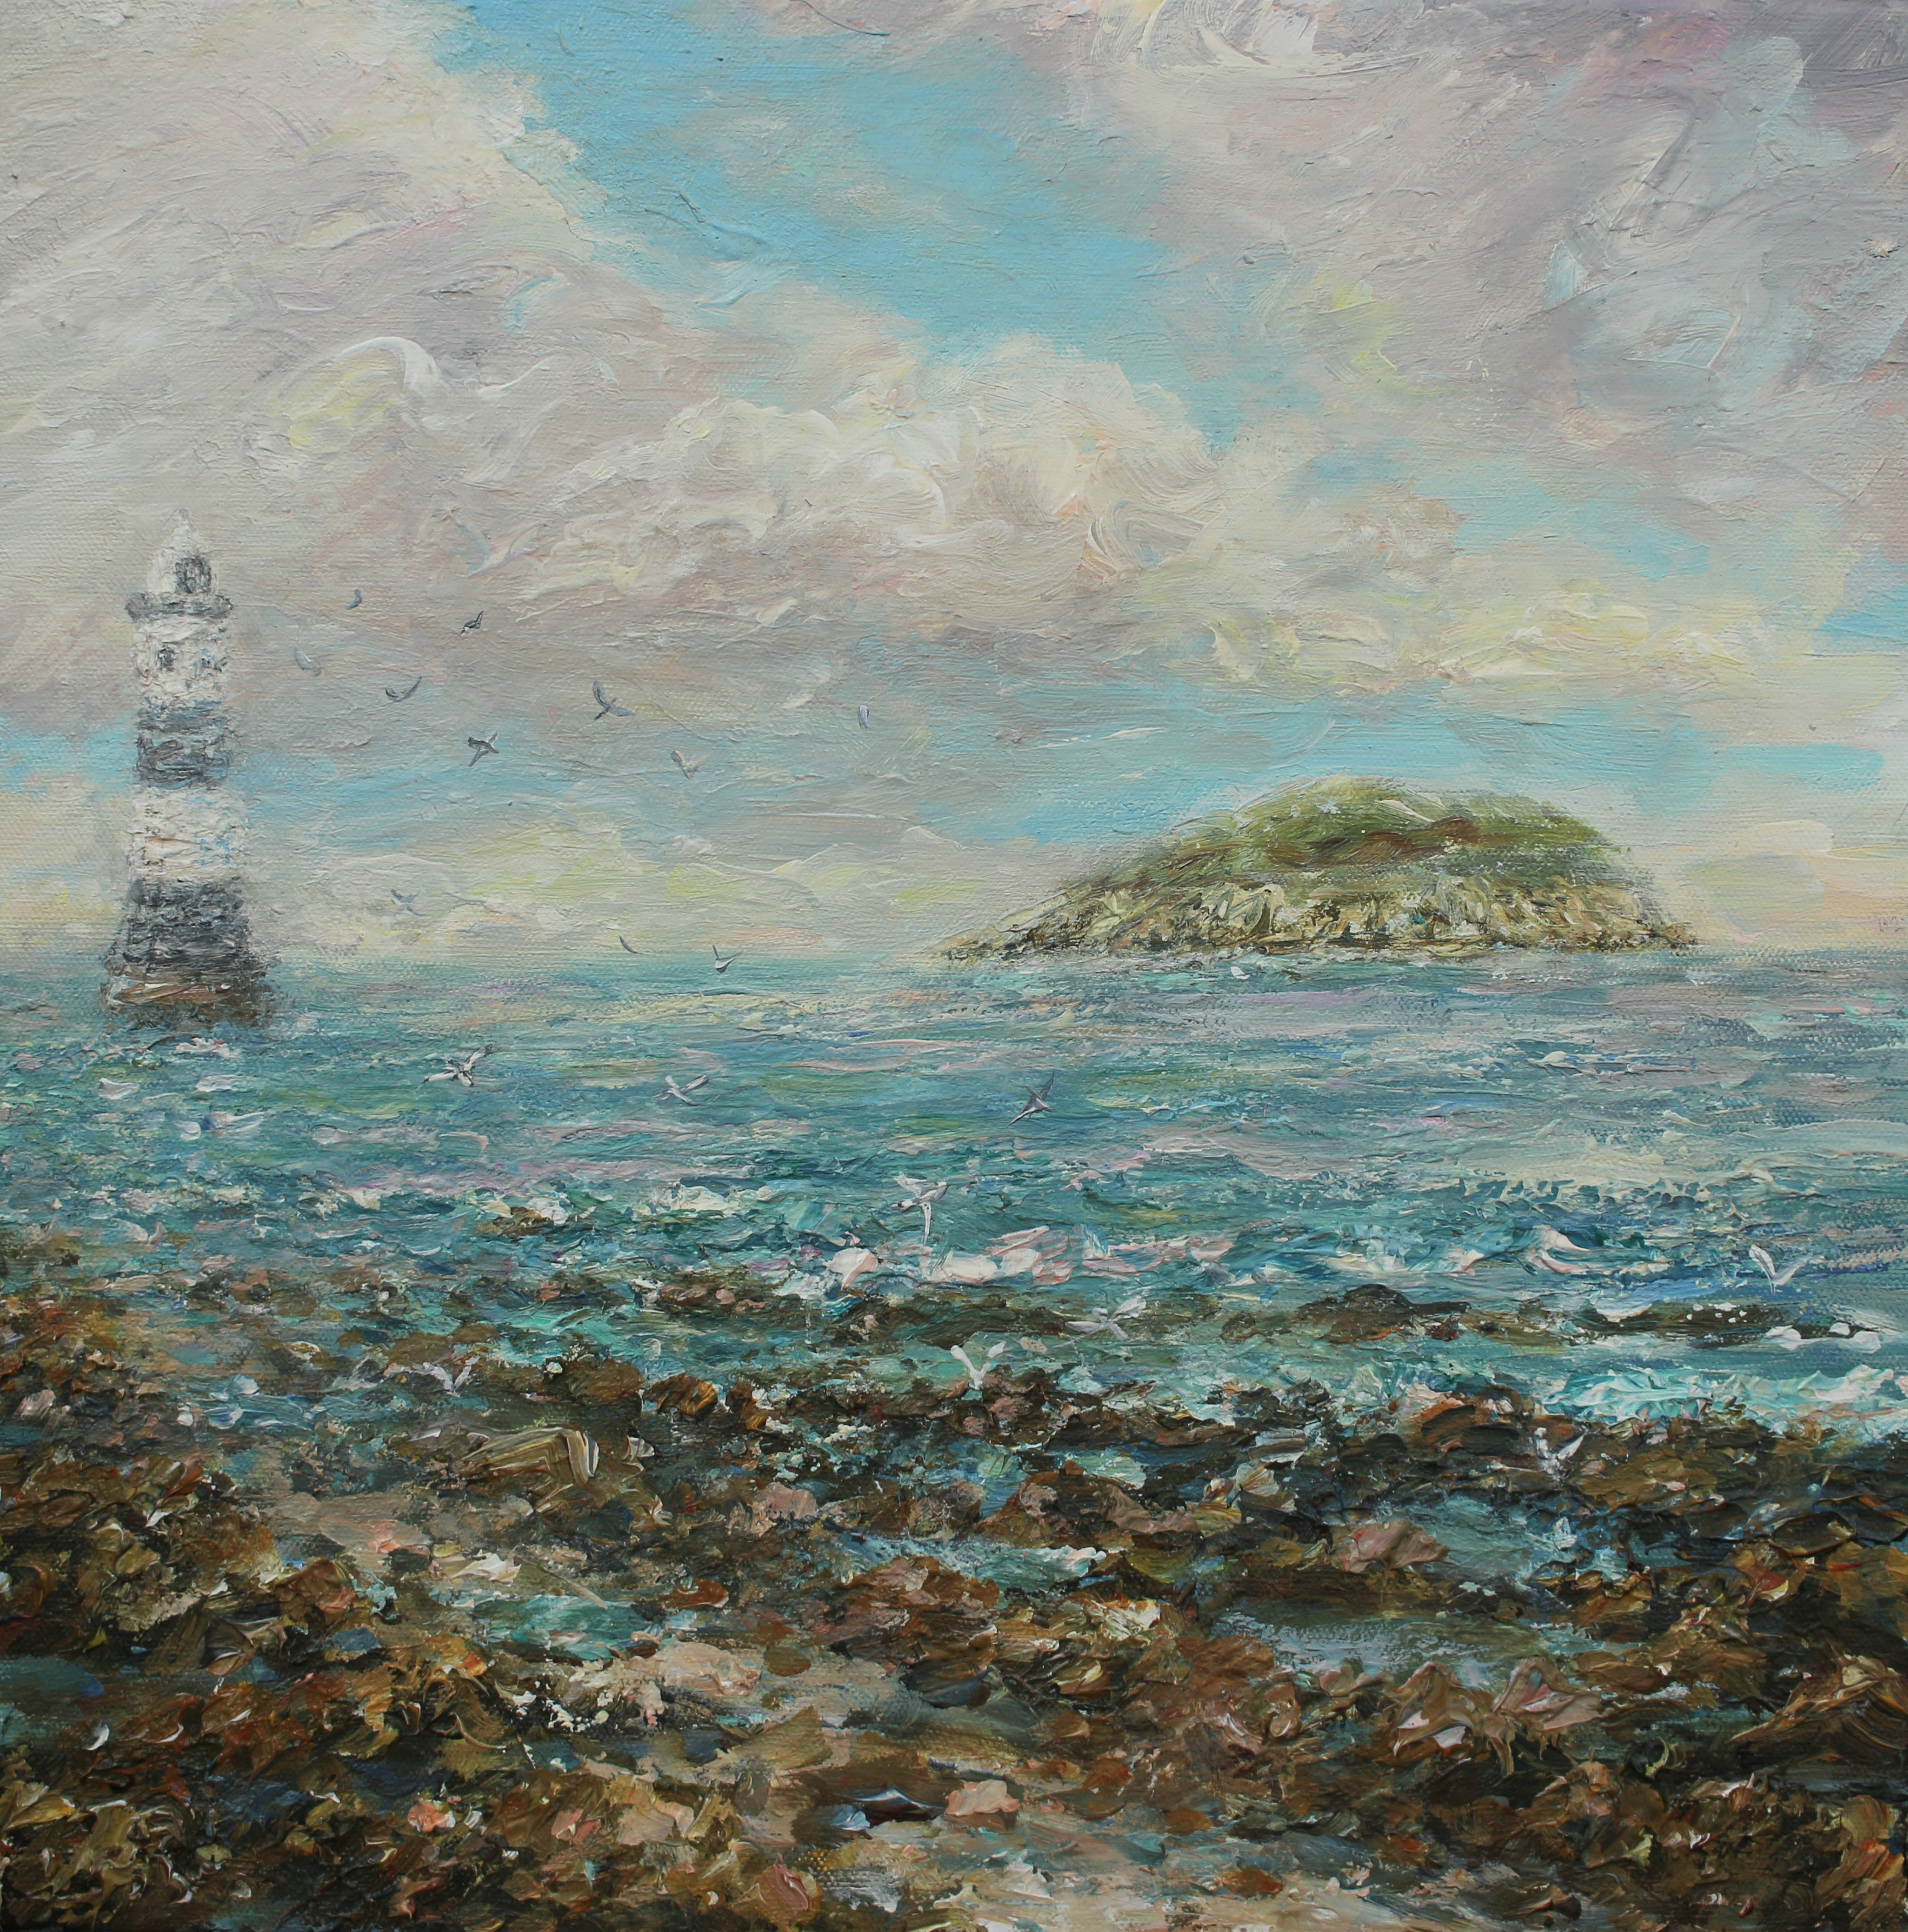 Penmon lighthouse and Puffin island 40x4